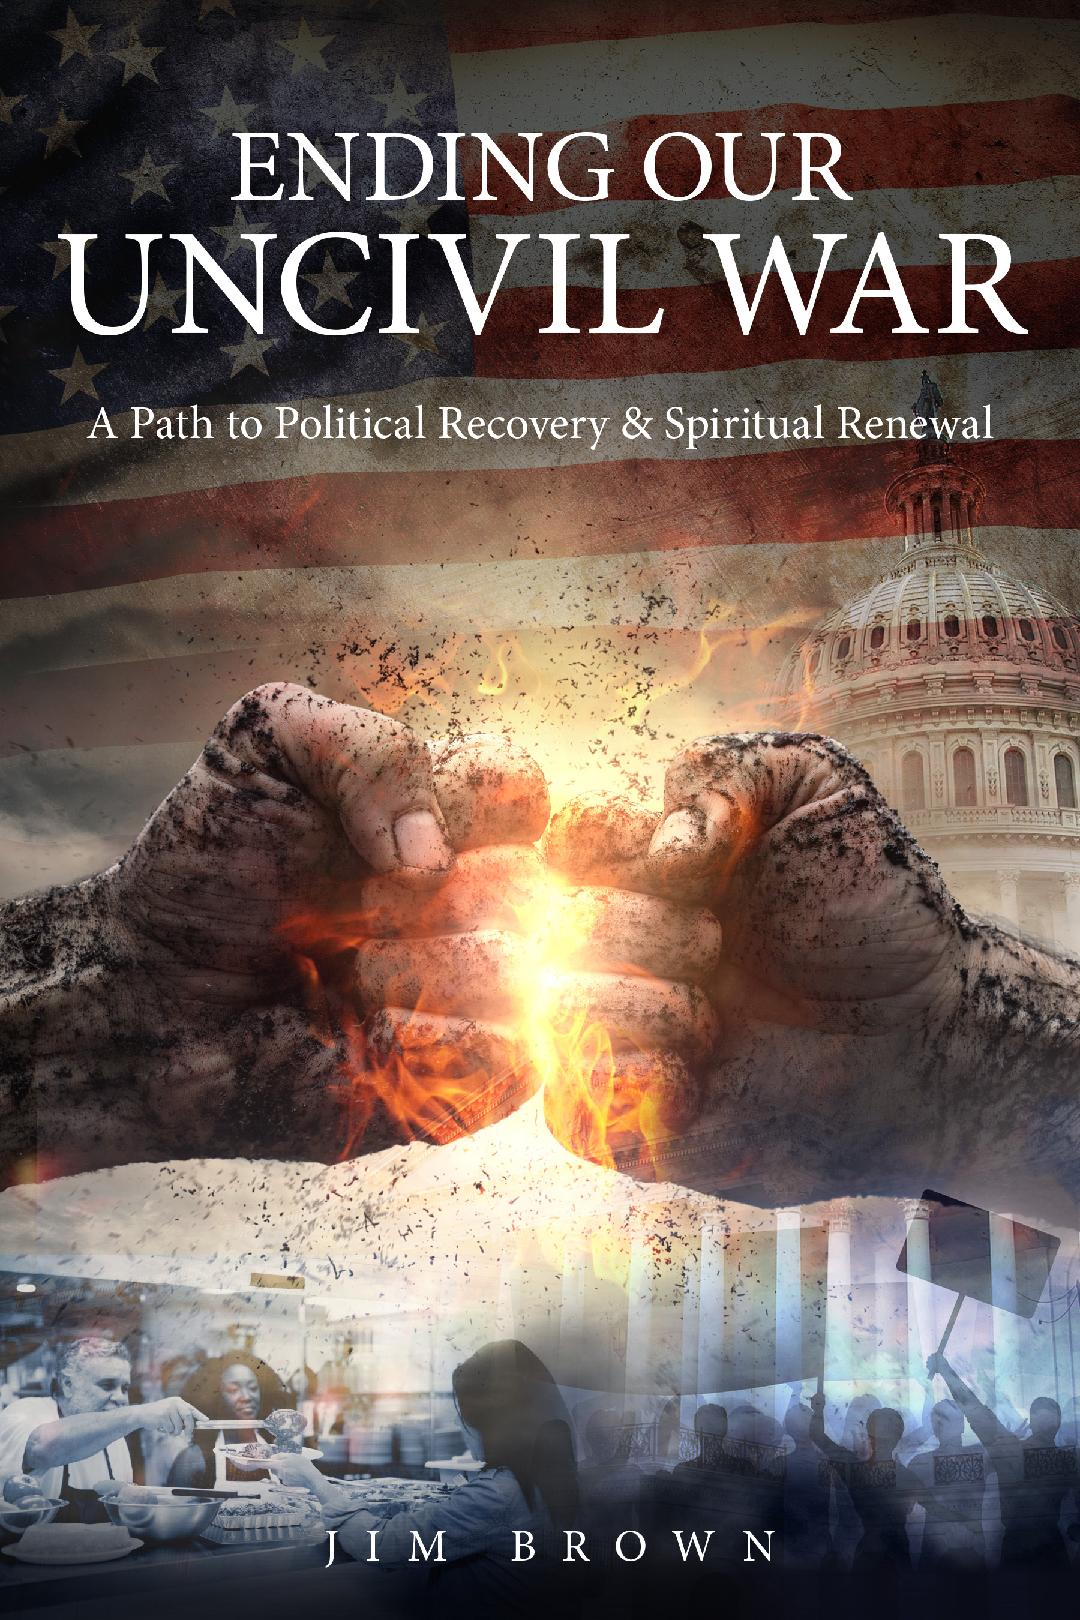 BOOK RELEASE: Ending Our Uncivil War Offers Action Steps to Promote Civil Discourse, Spiritual Growth & Government Functionality